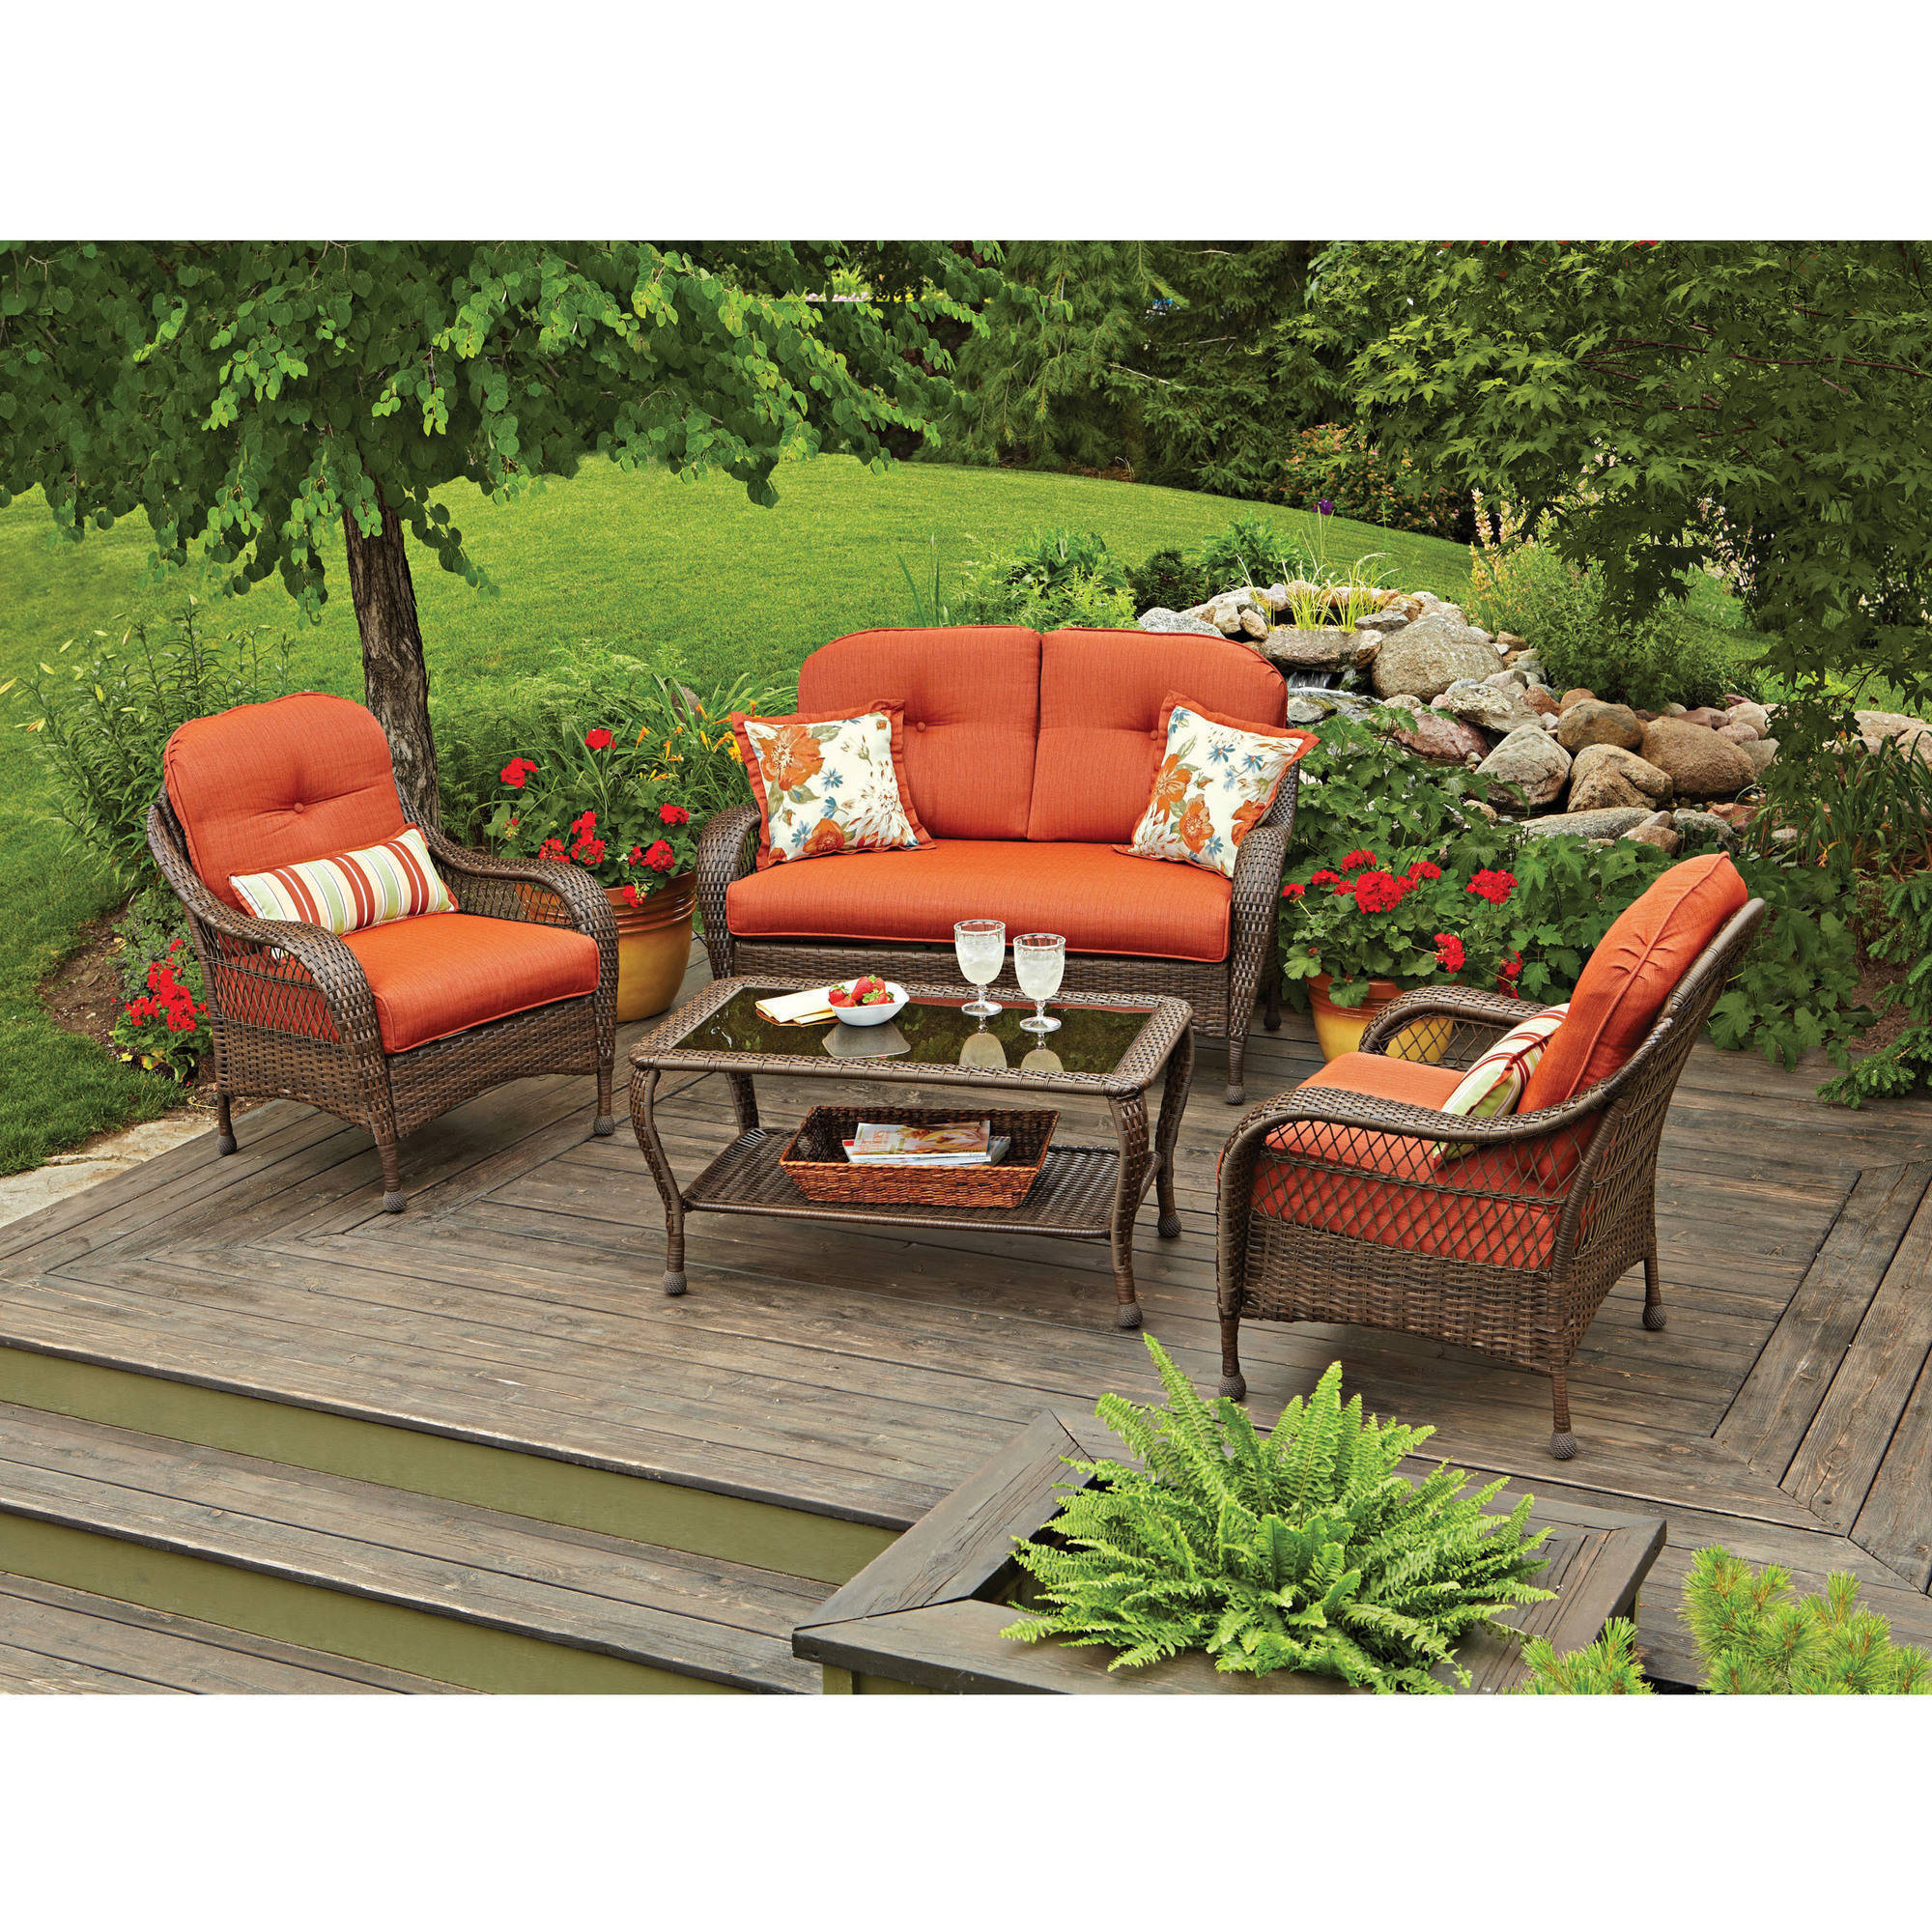 Garden Furniture Sets better homes and gardens azalea ridge 4-piece patio conversation